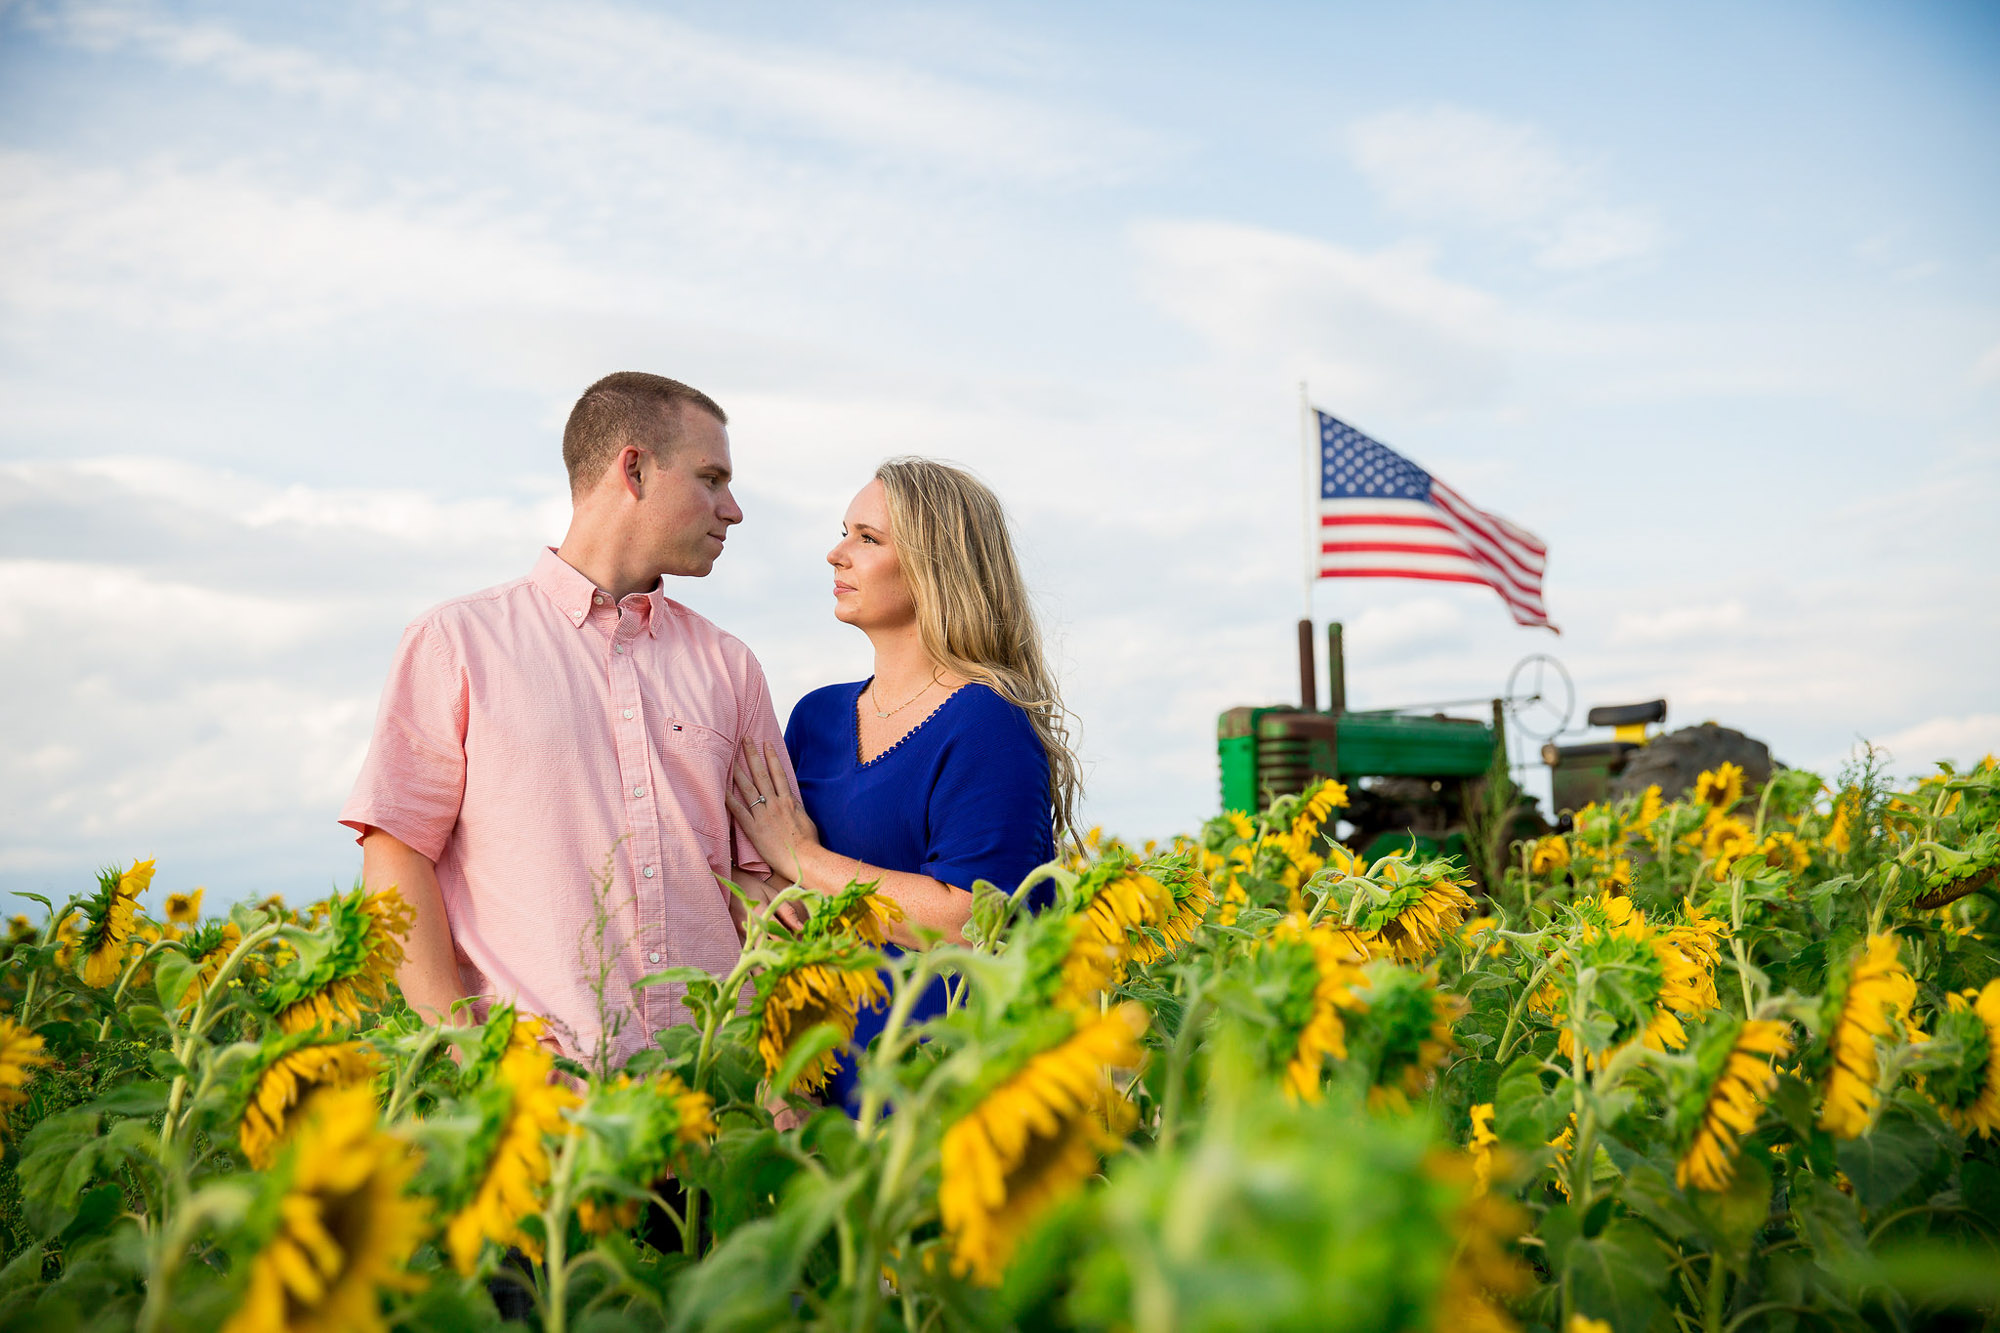 boston-wedding-photographer-26-north-studios-colby-farm-engagement.jpg